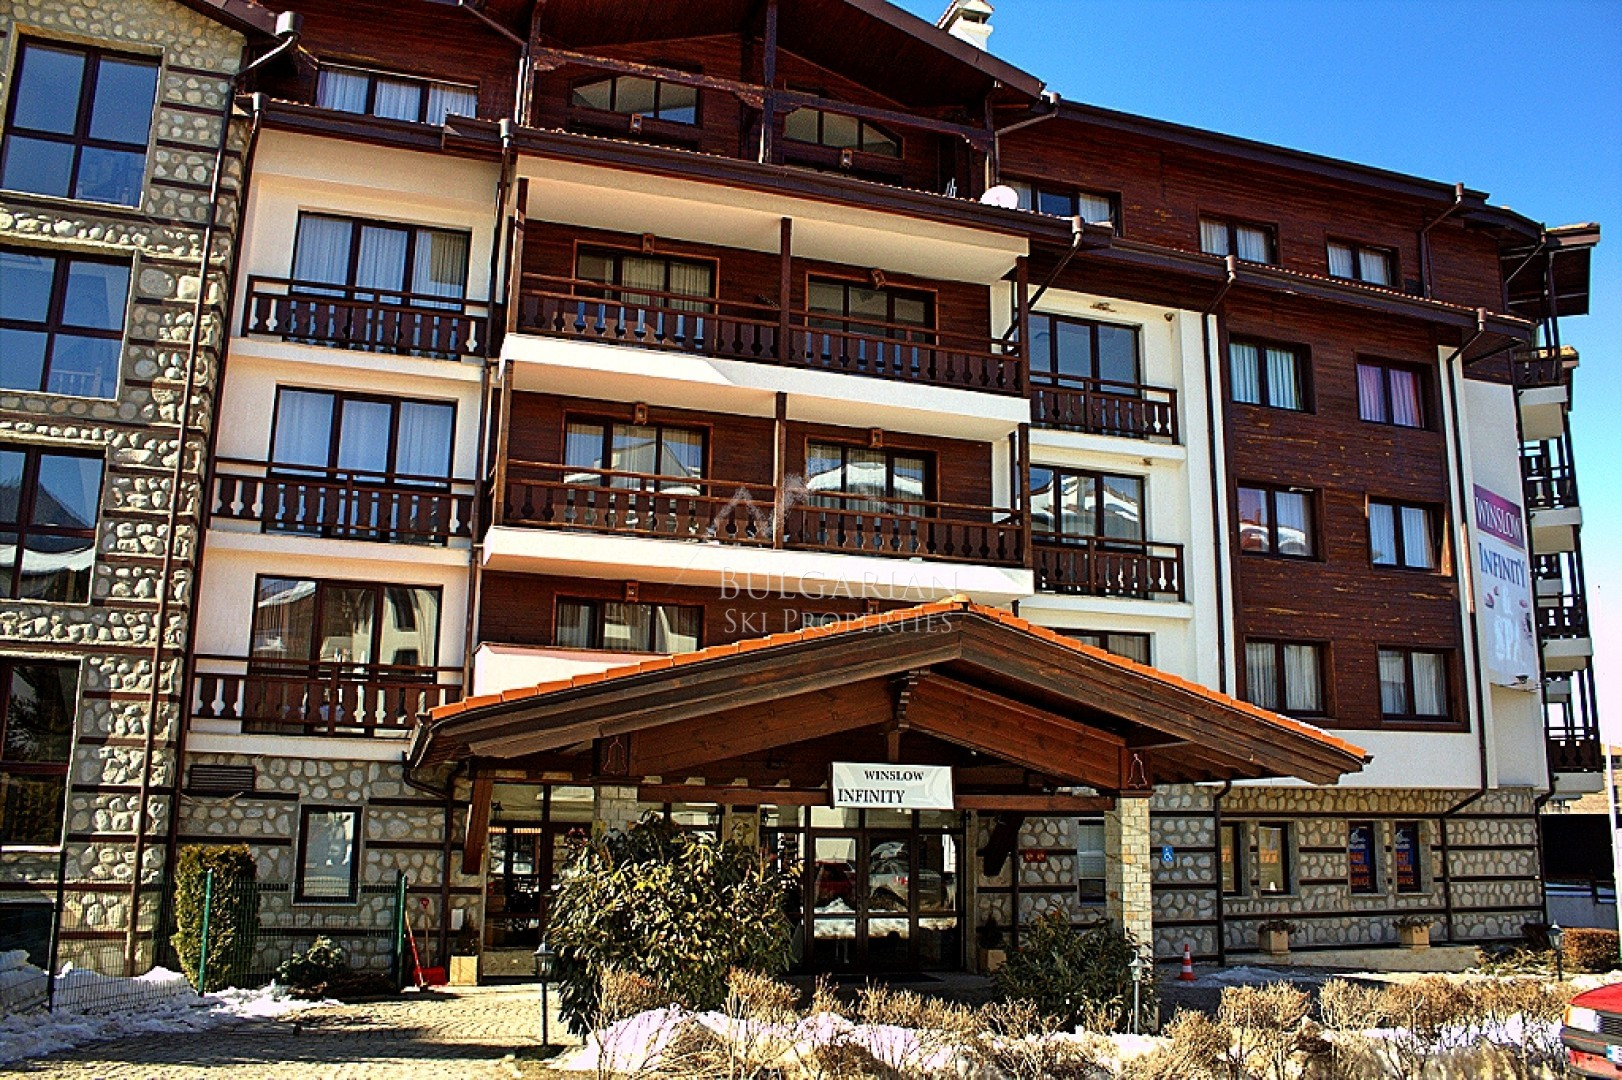 Bansko: modern furnished studio for sale in Winslow Infinity & Spa